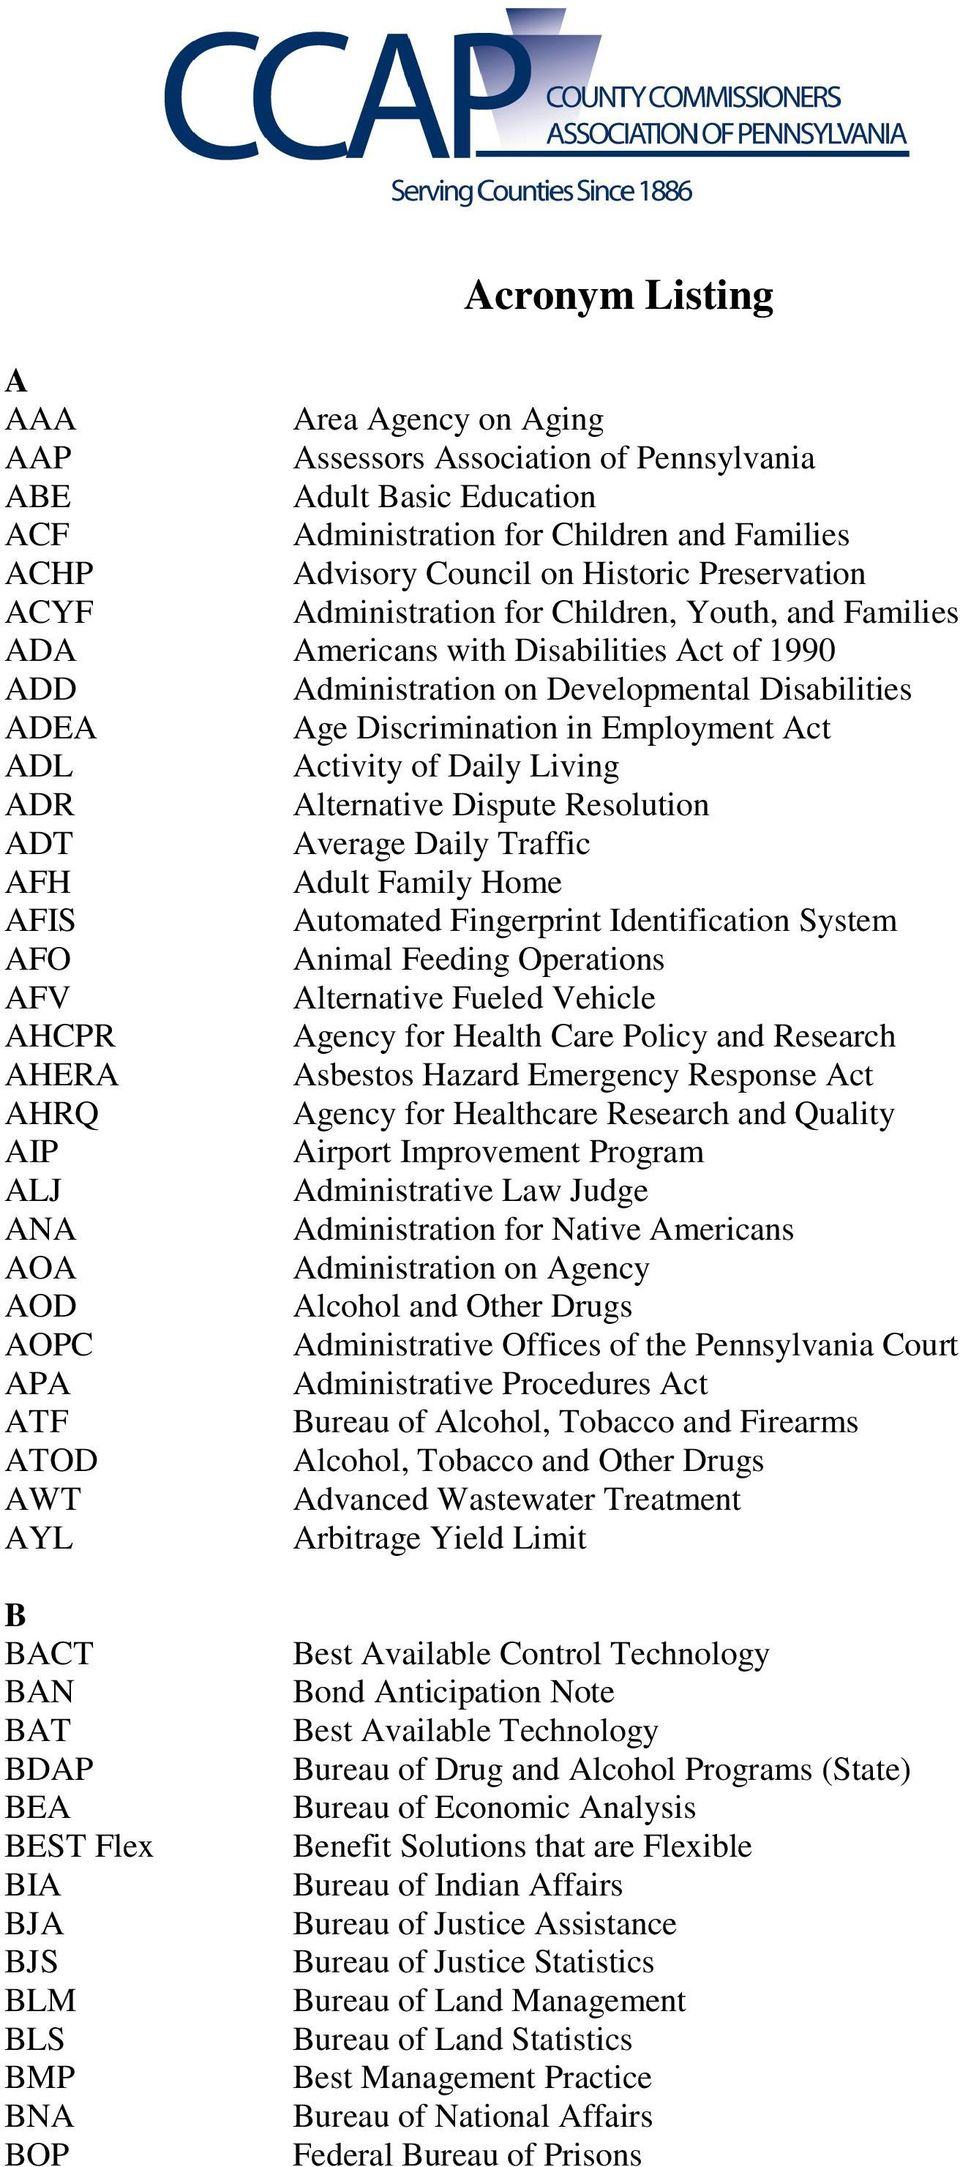 Act ADL Activity of Daily Living ADR Alternative Dispute Resolution ADT Average Daily Traffic AFH Adult Family Home AFIS Automated Fingerprint Identification System AFO Animal Feeding Operations AFV